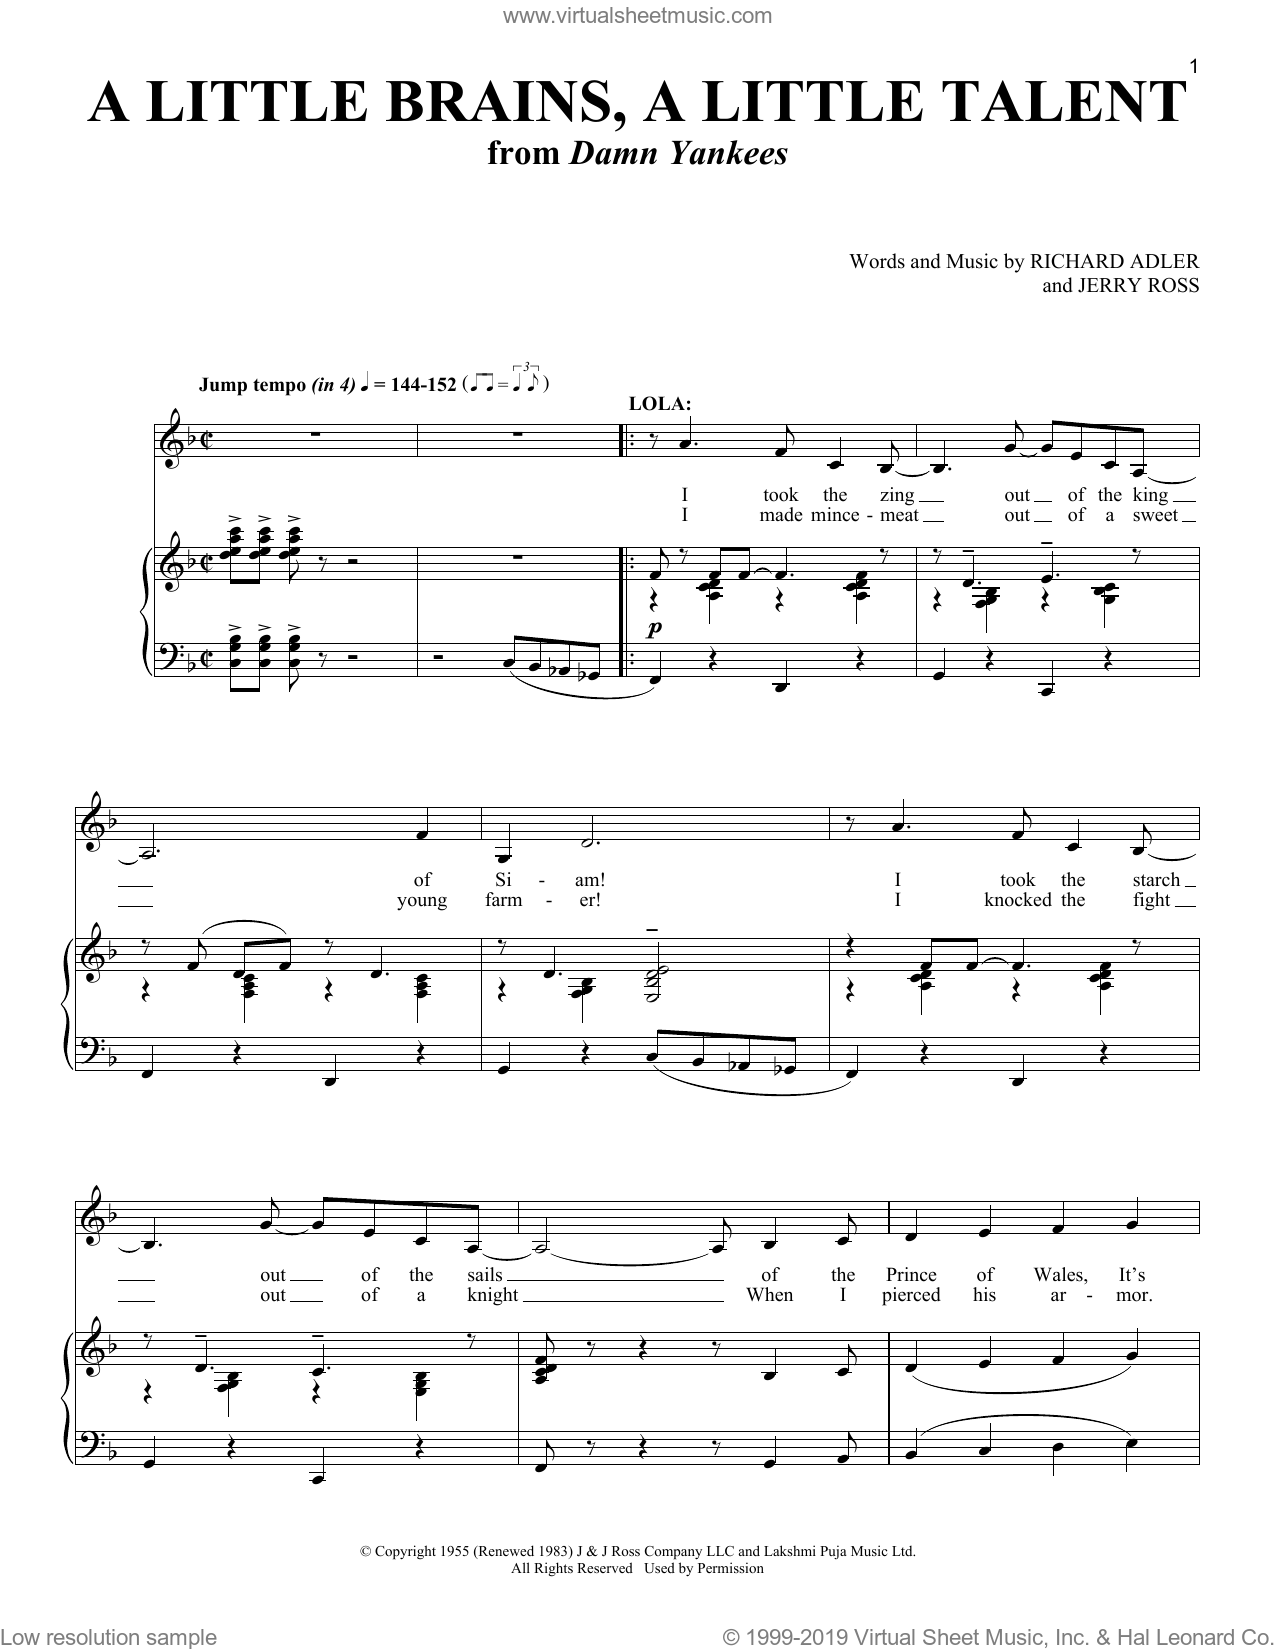 A Little Brains, A Little Talent (from Damn Yankees) sheet music for voice and piano by Richard Adler, Richard Walters, Jerry Ross and Richard Adler and Jerry Ross, intermediate skill level